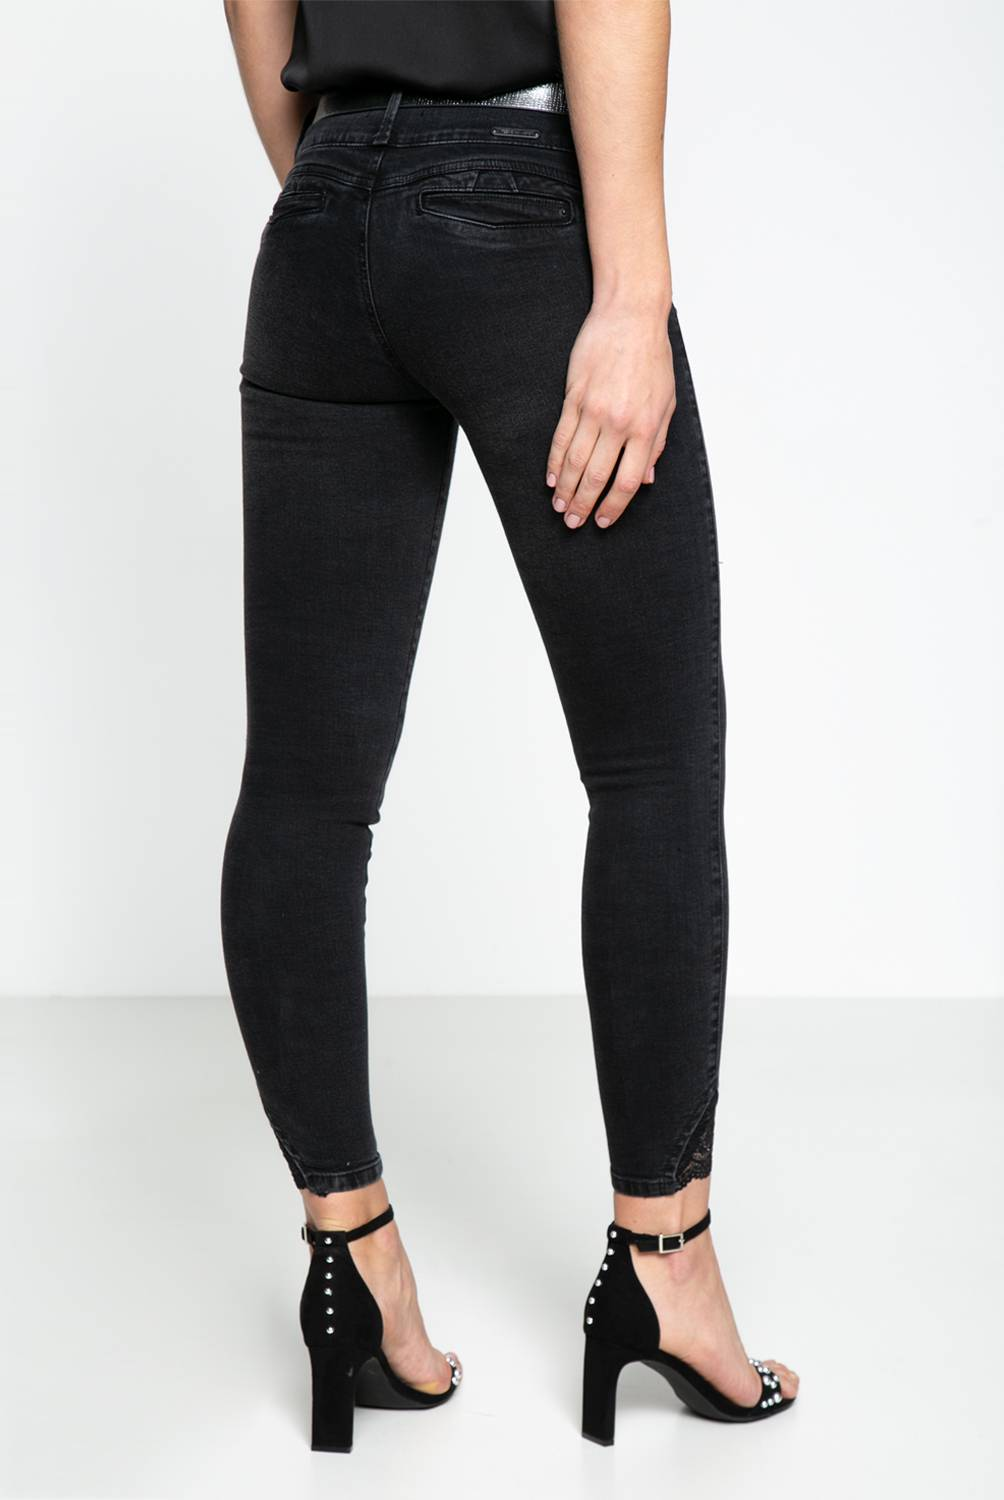 Mossimo - Jeans Mujer